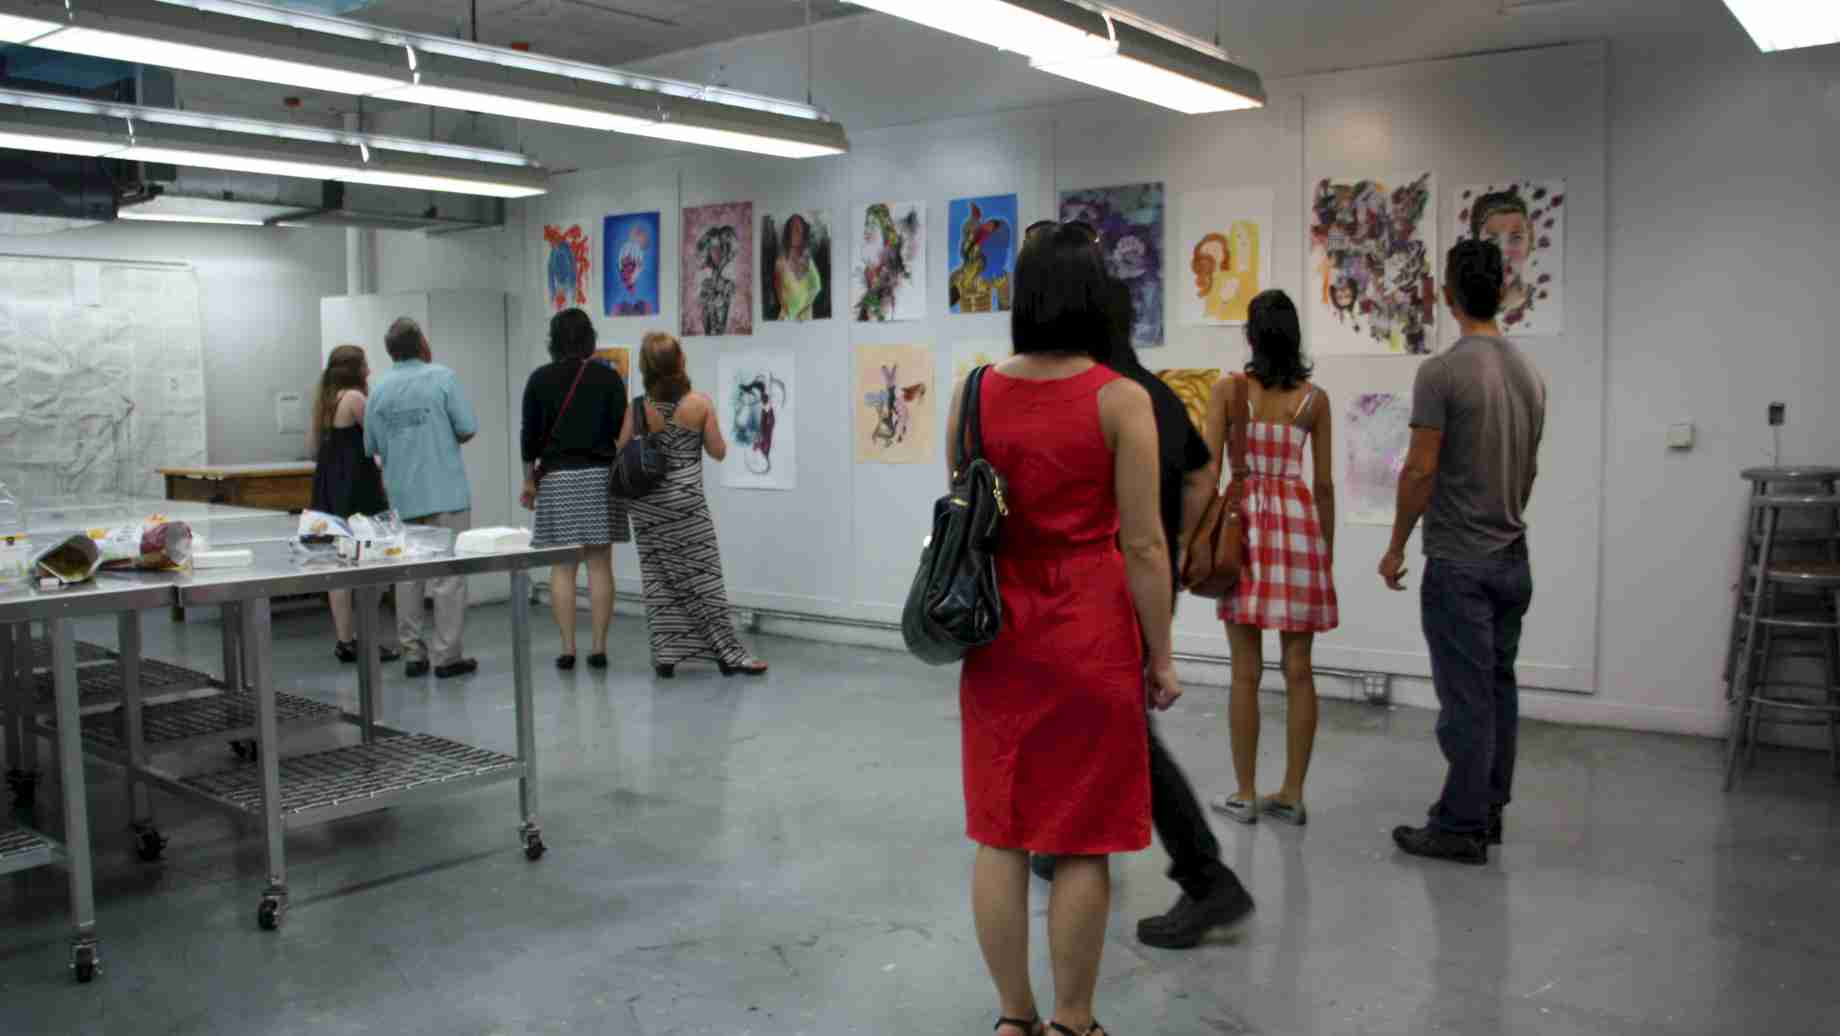 Art Bash: Every year, SAAH opens its doors to the public for a variety of programming including open studios, classroom exhibitions, demos and more